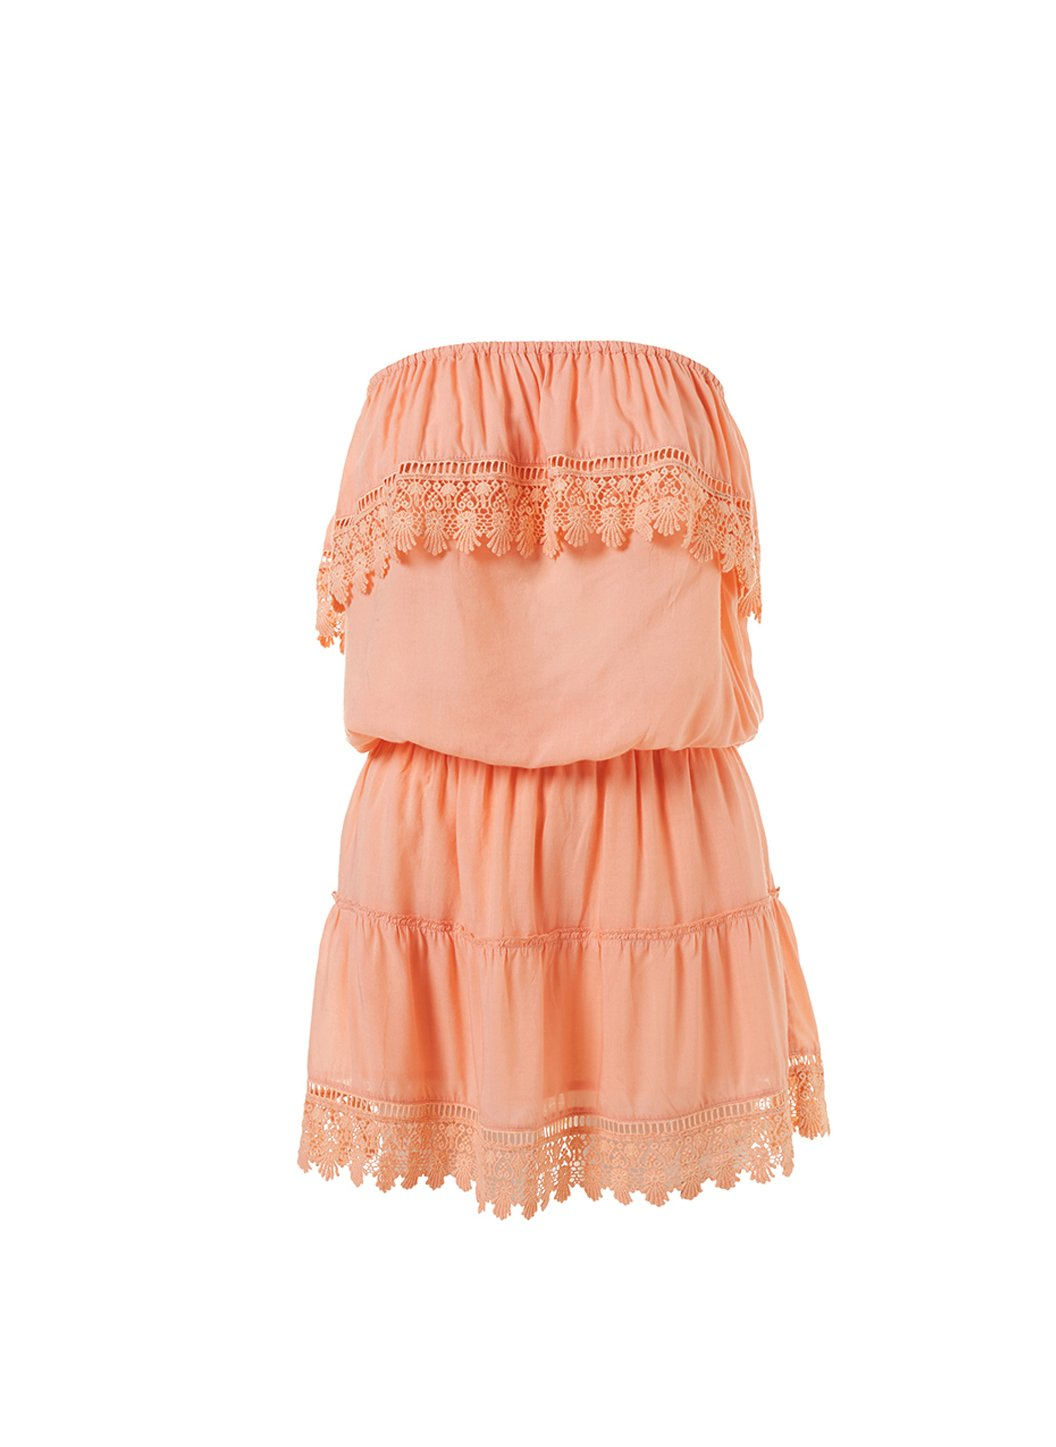 joy mango bandeau embroidered frill short dress 2019